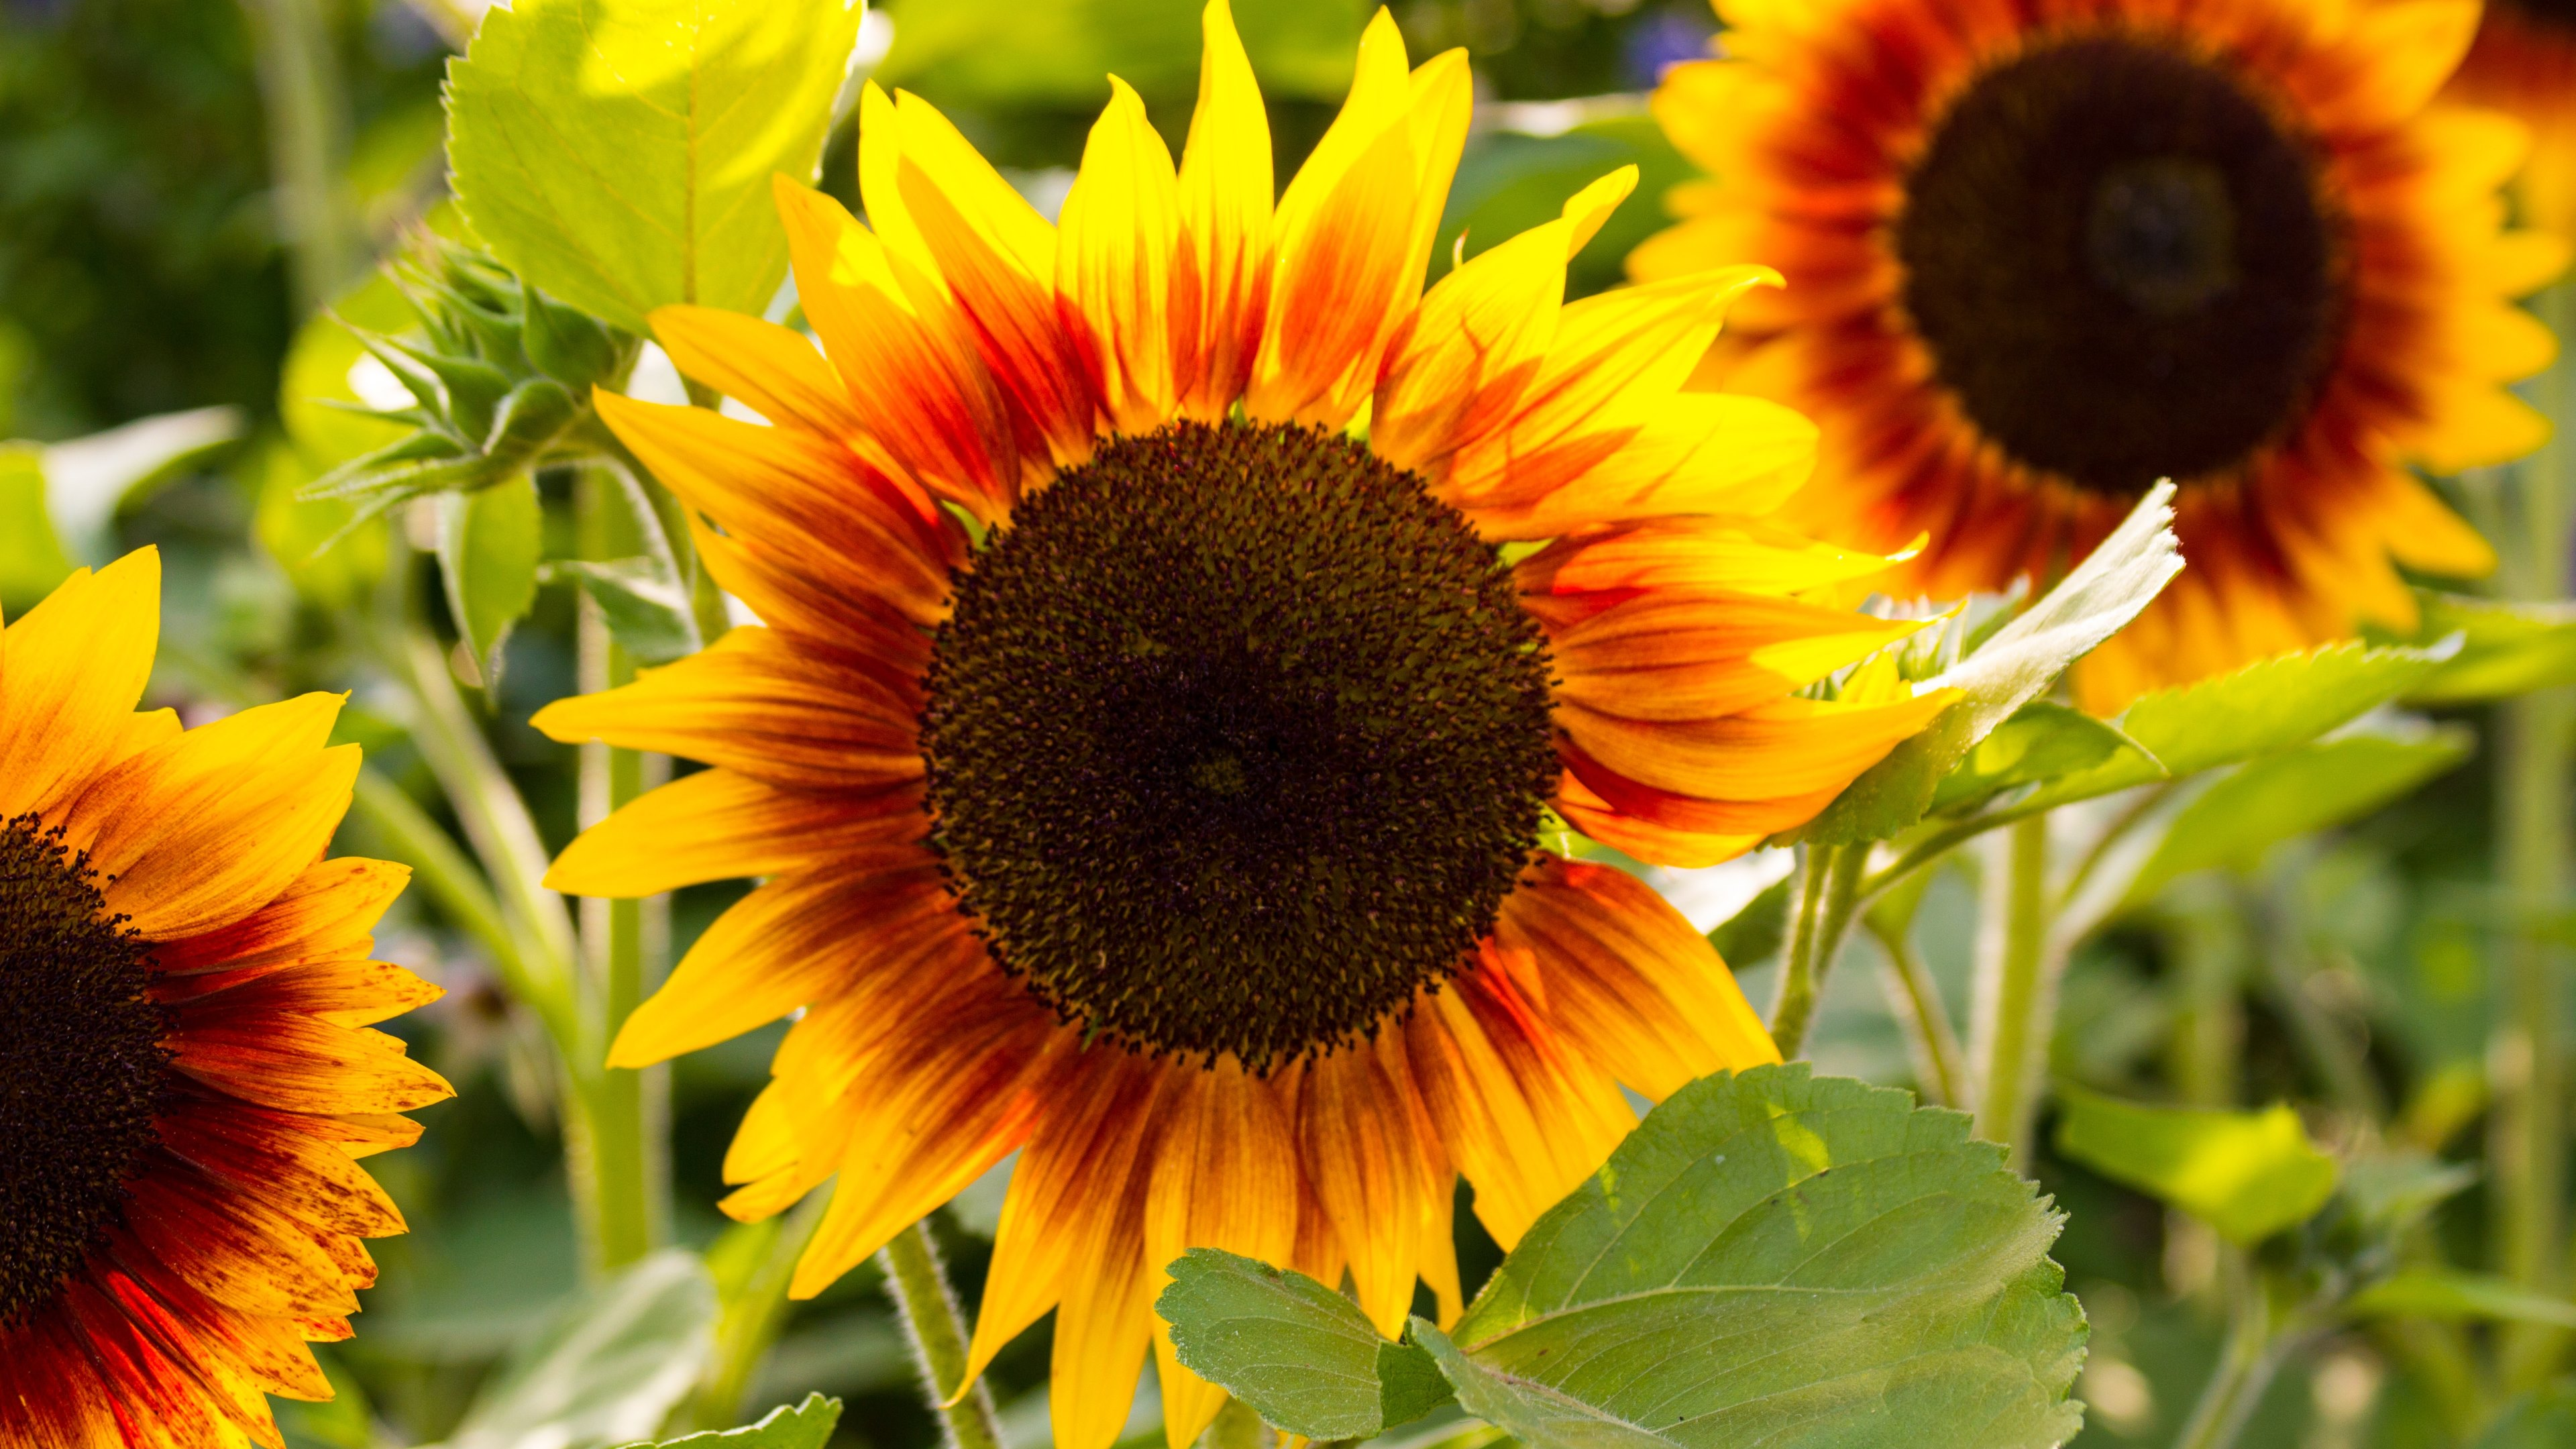 sunflowers 4k ultra hd wallpaper | background image | 3840x2160 | id